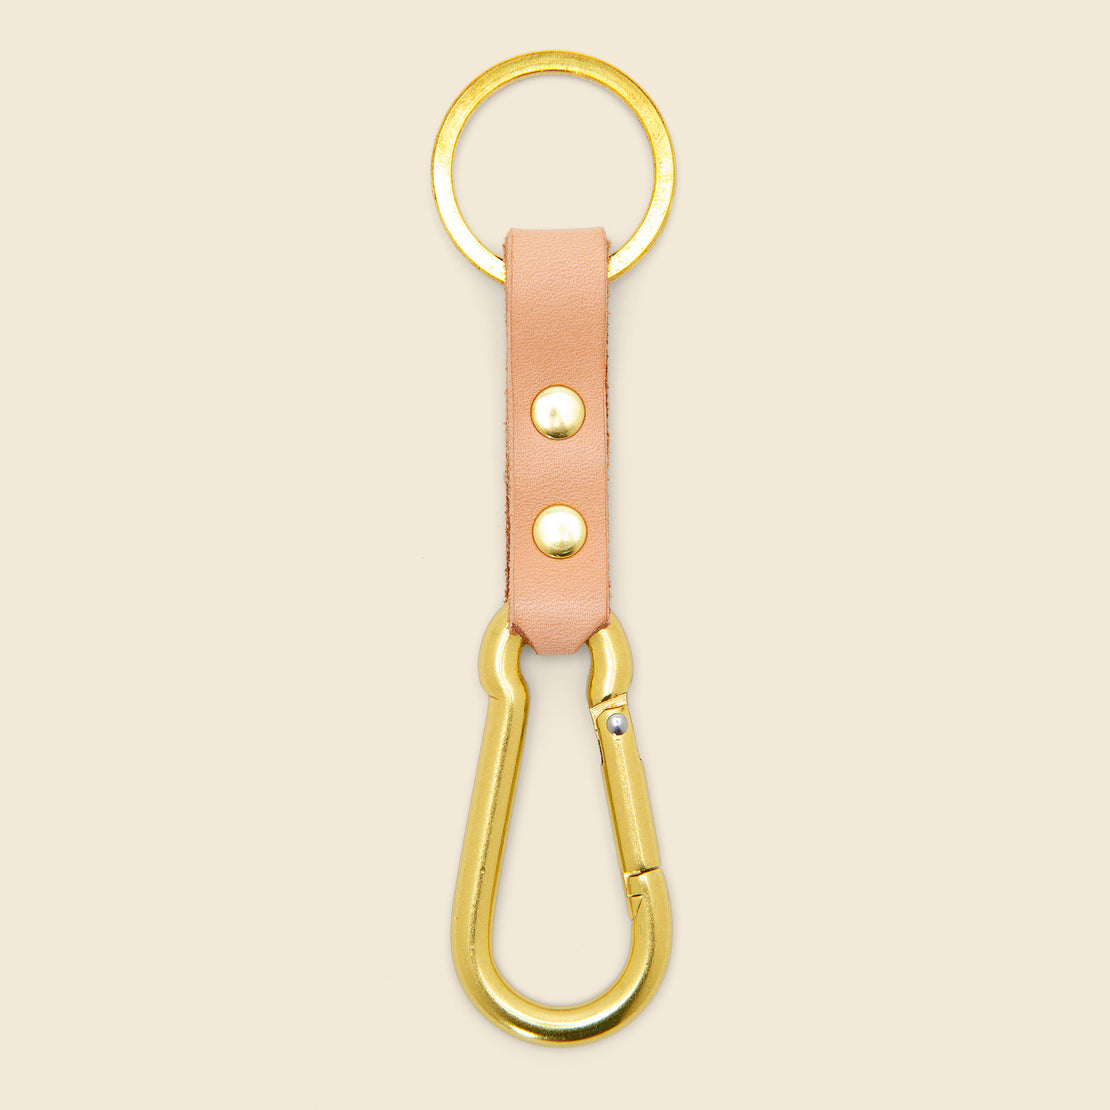 Son of a Sailor Carabiner Key Chain - Natural